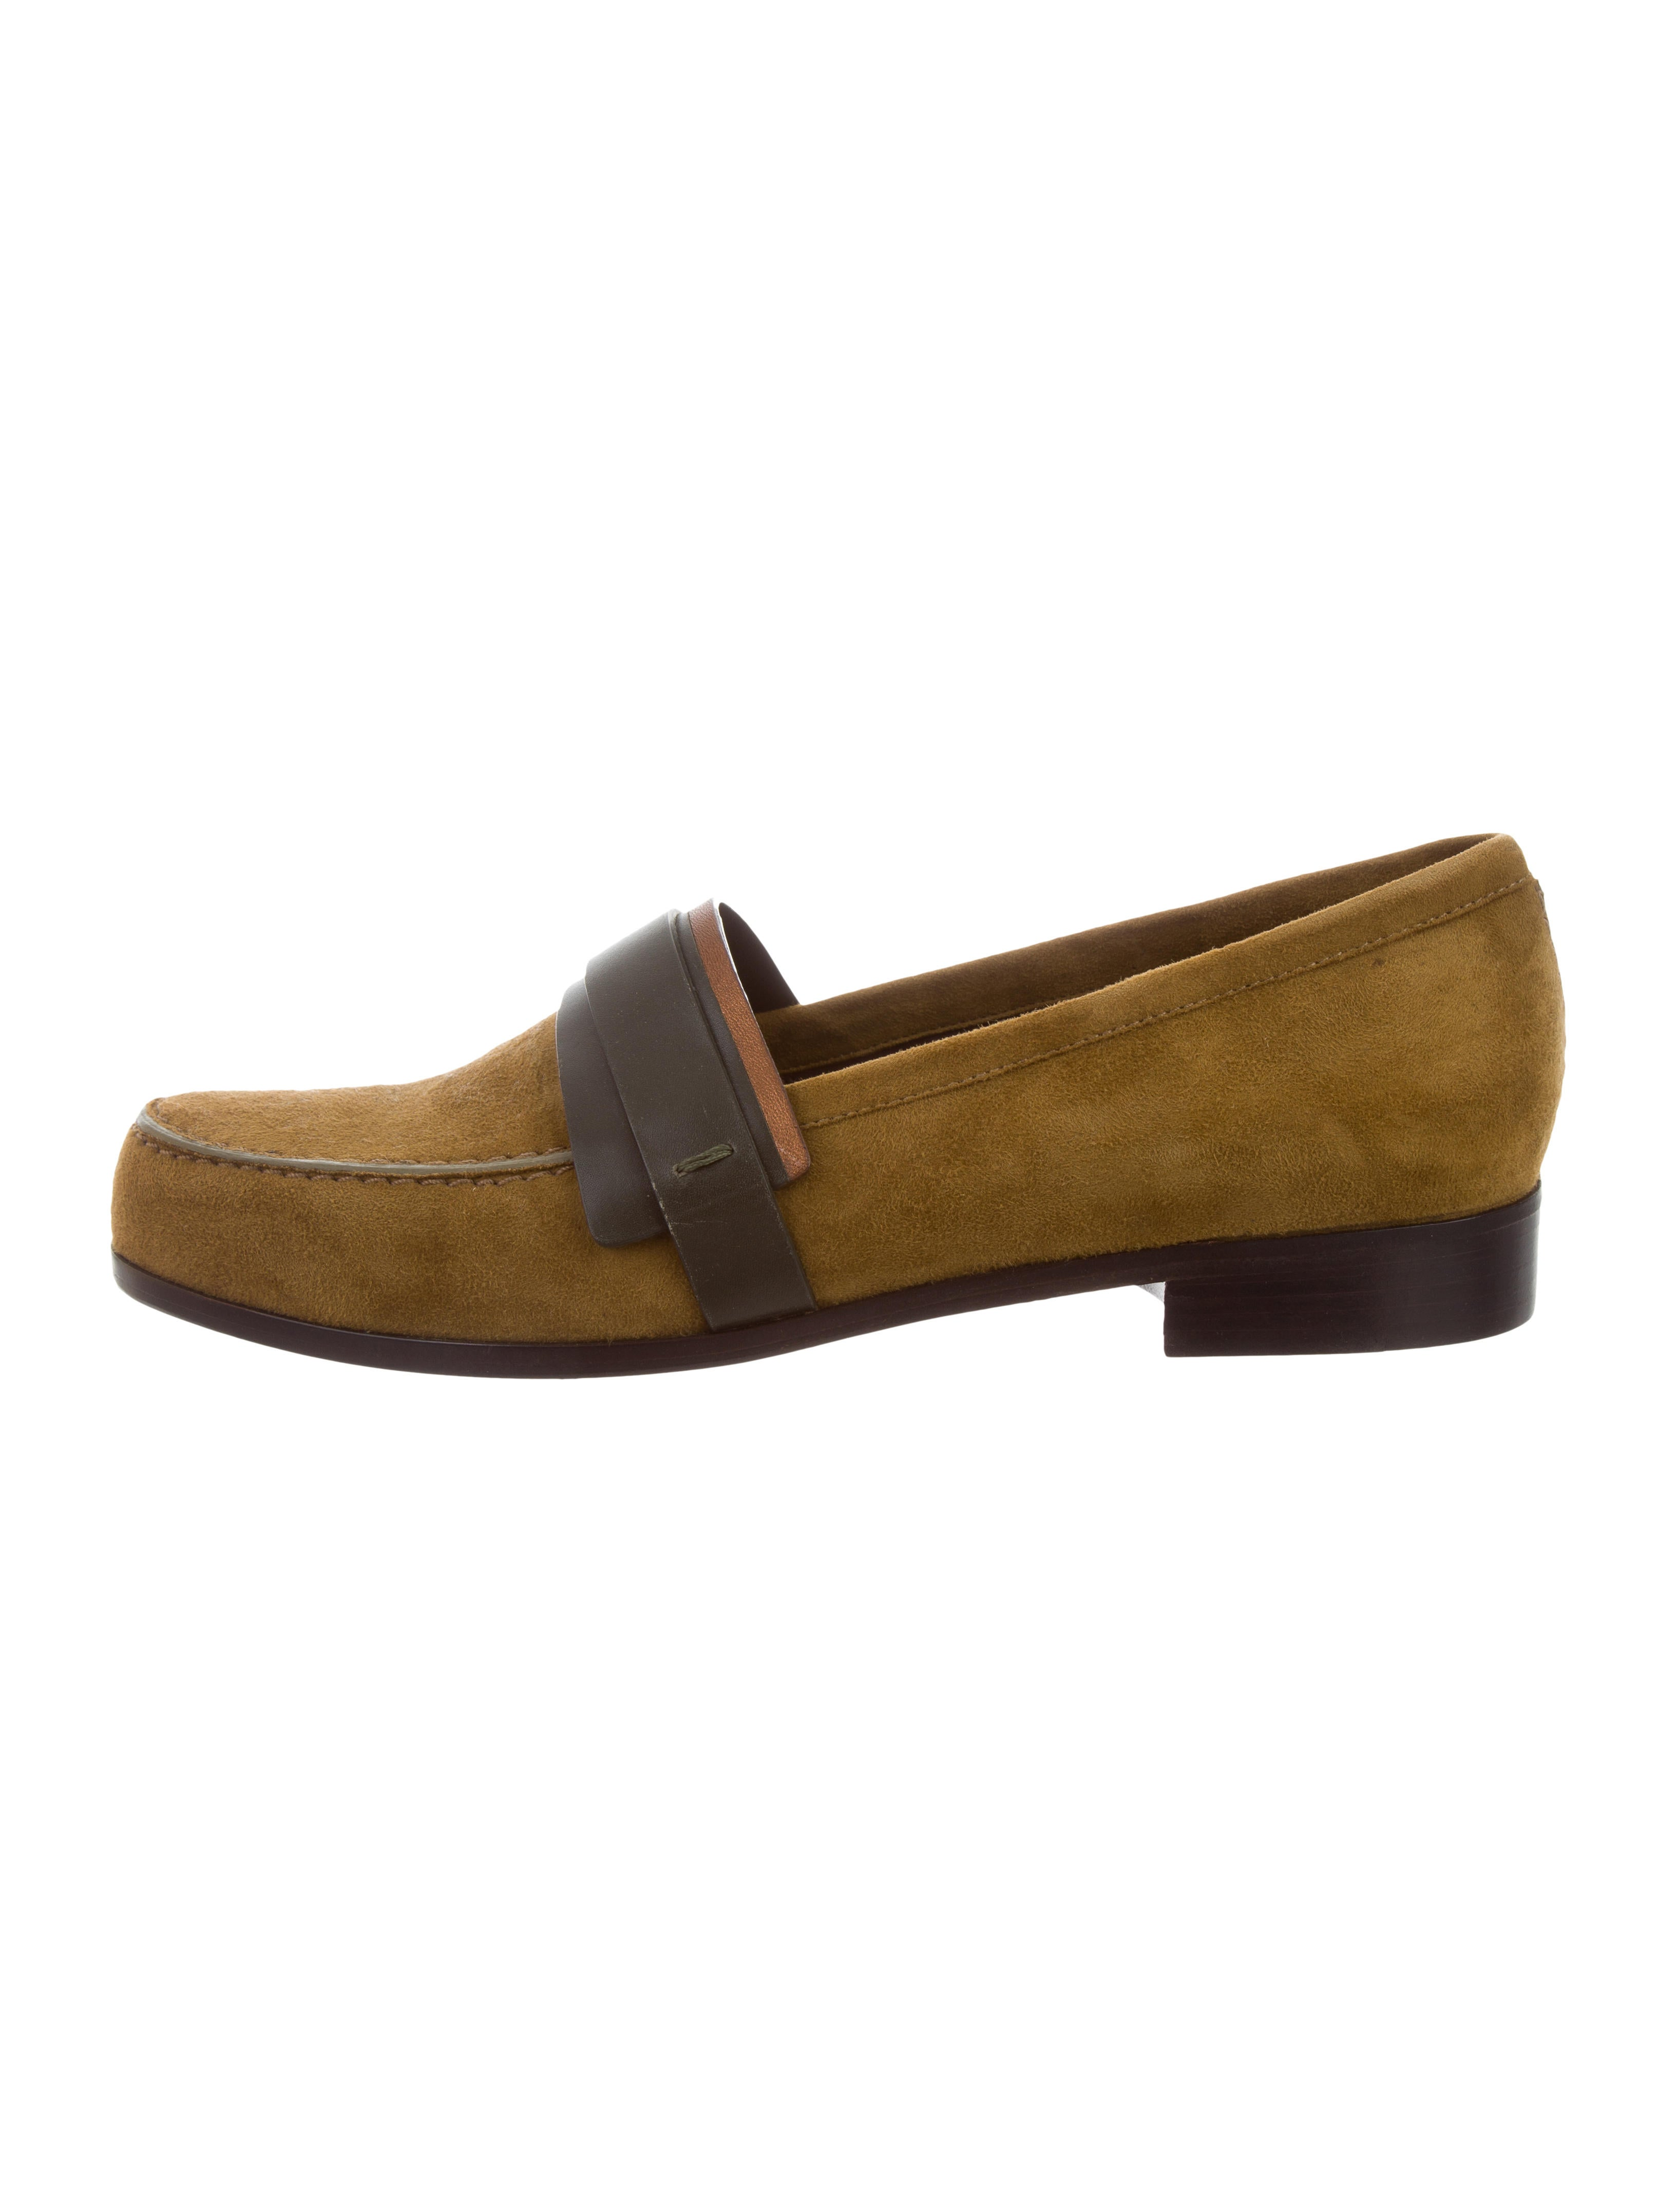 Carritz Suede Round-Toe Loafers w/ Tags buy cheap with paypal sale choice 2c872E